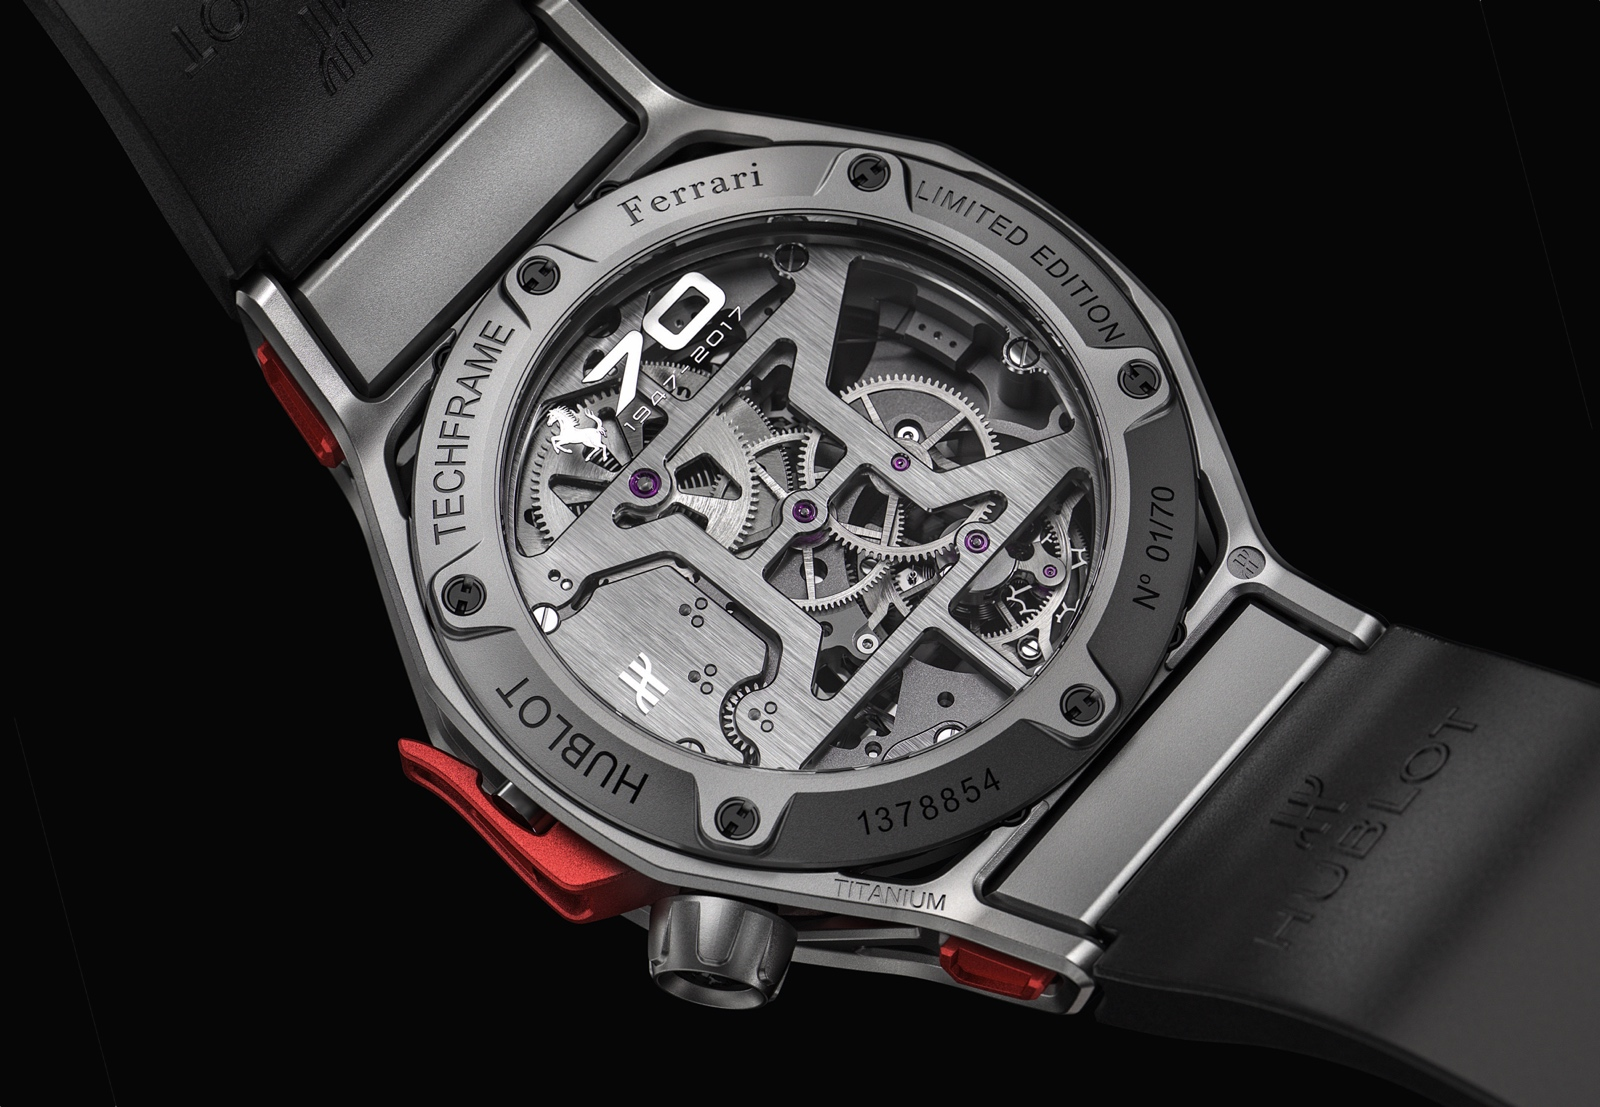 Hublot en Baselworld 2017 - Techframe Ferrari 70 years Tourbillon Chronograph - back